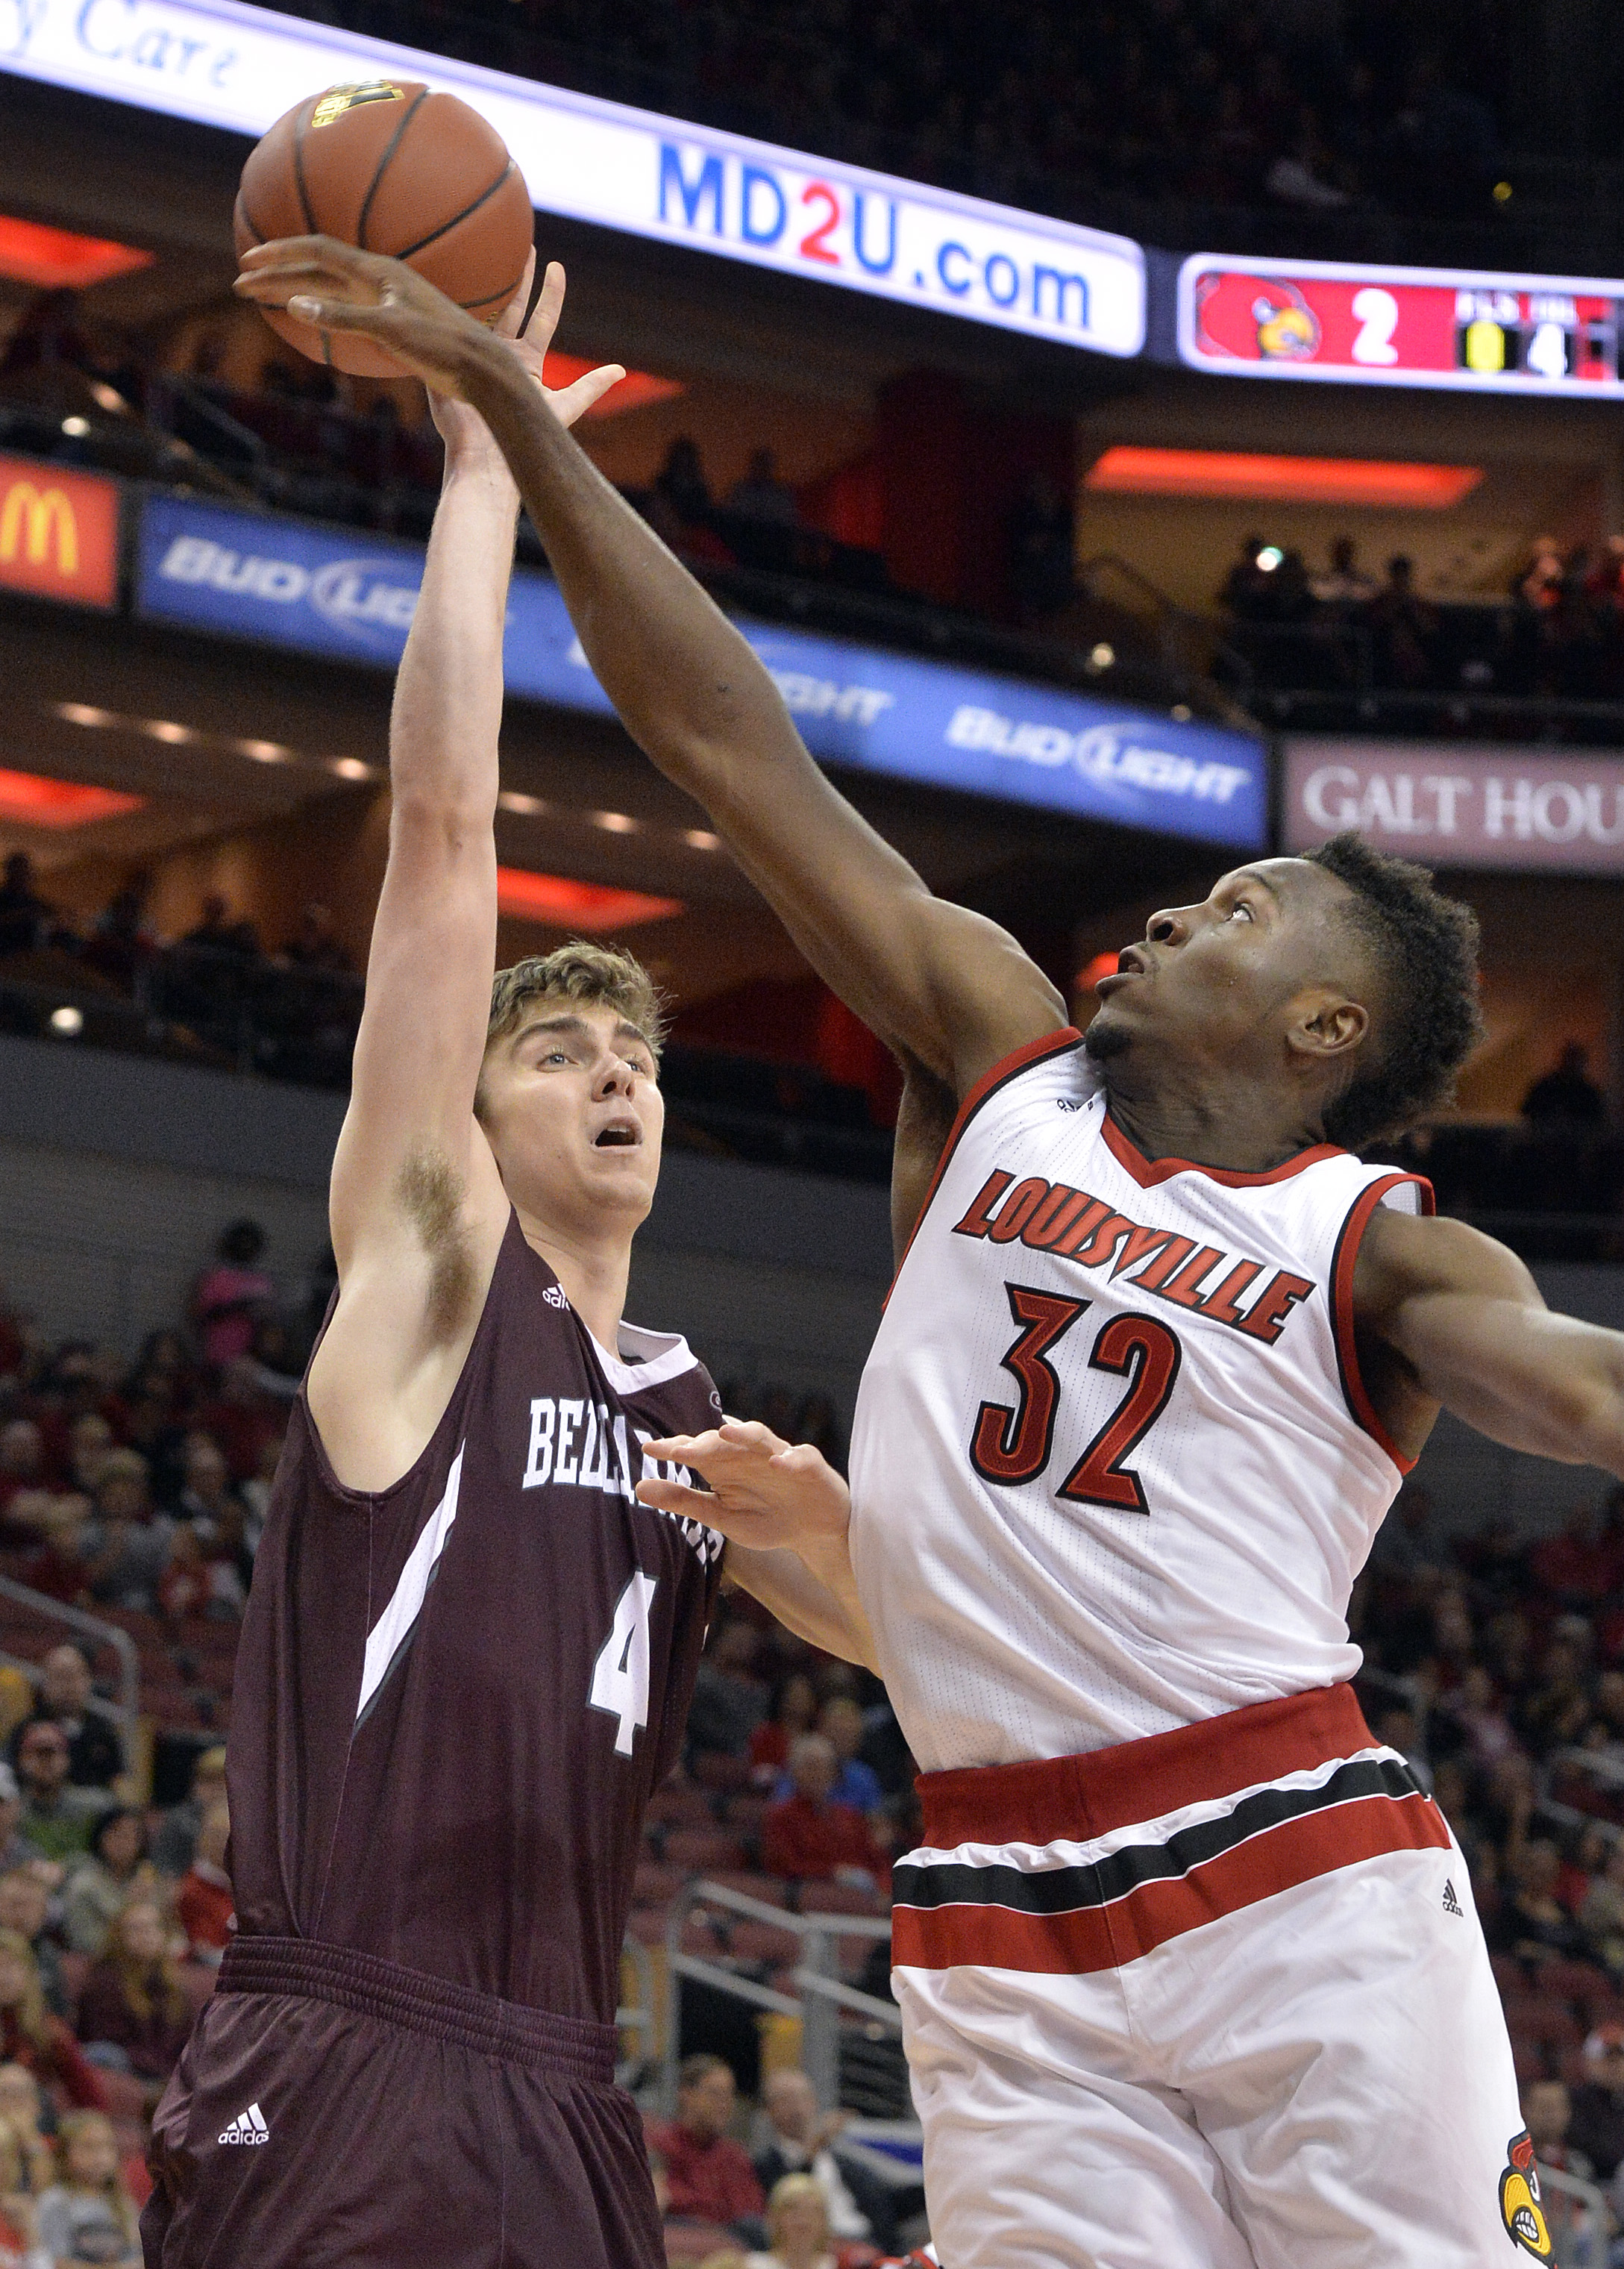 Louisville's Chinanu Onuaku (32) blocks the shot of Bellamine's George Suggs (4) during an NCAA college basketball exhibition game, Sunday, Nov. 1, 2015, in Louisville, Ky. (AP Photo/Timothy D. Easley)